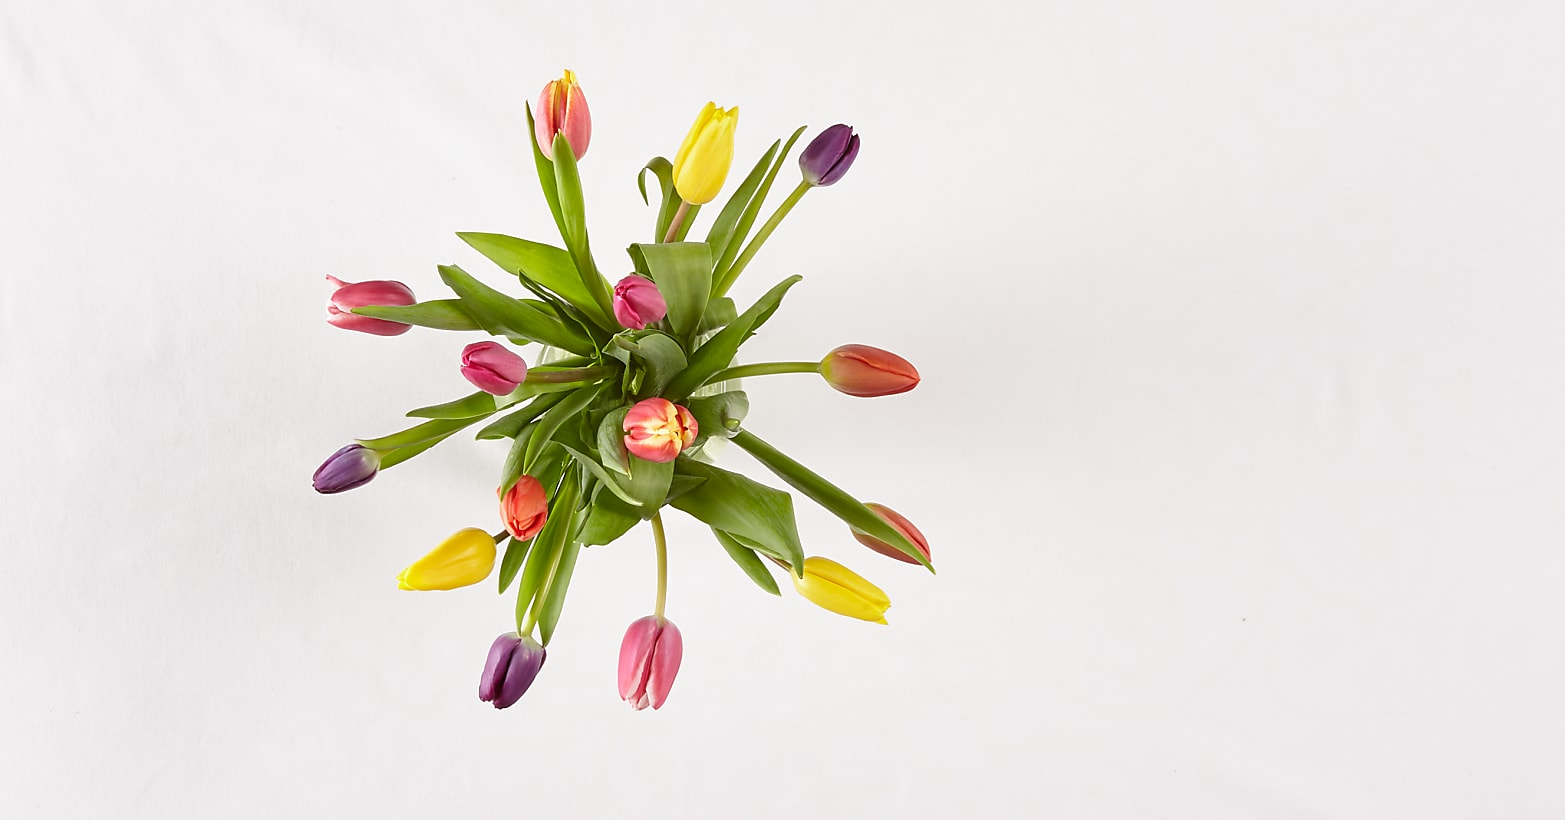 Spring Breeze Multicolored Tulip Bouquet - Image 3 Of 4